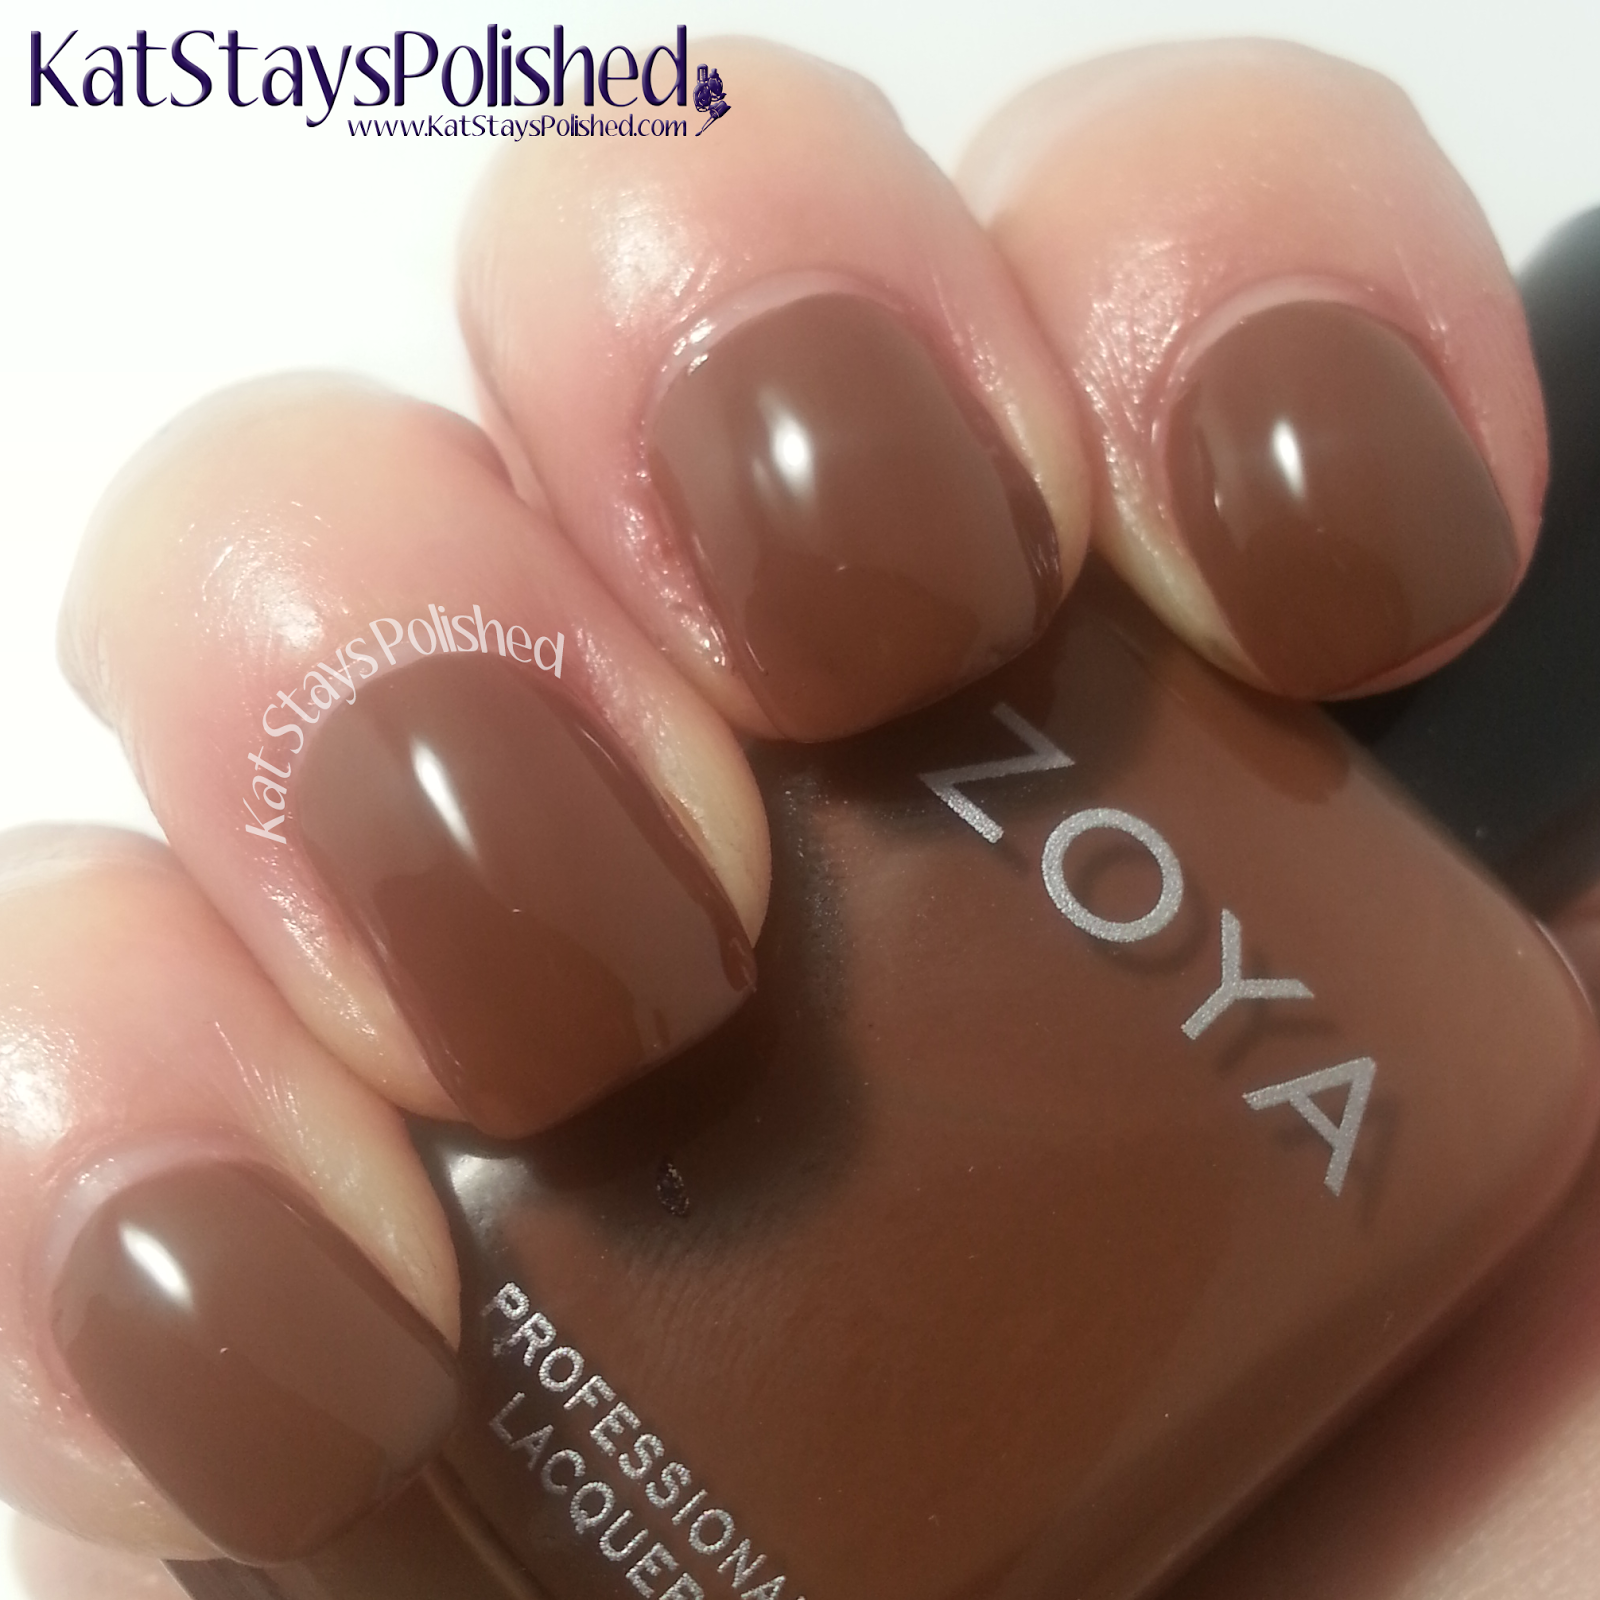 Zoya Entice 2014 - Nyssa | Kat Stays Polished